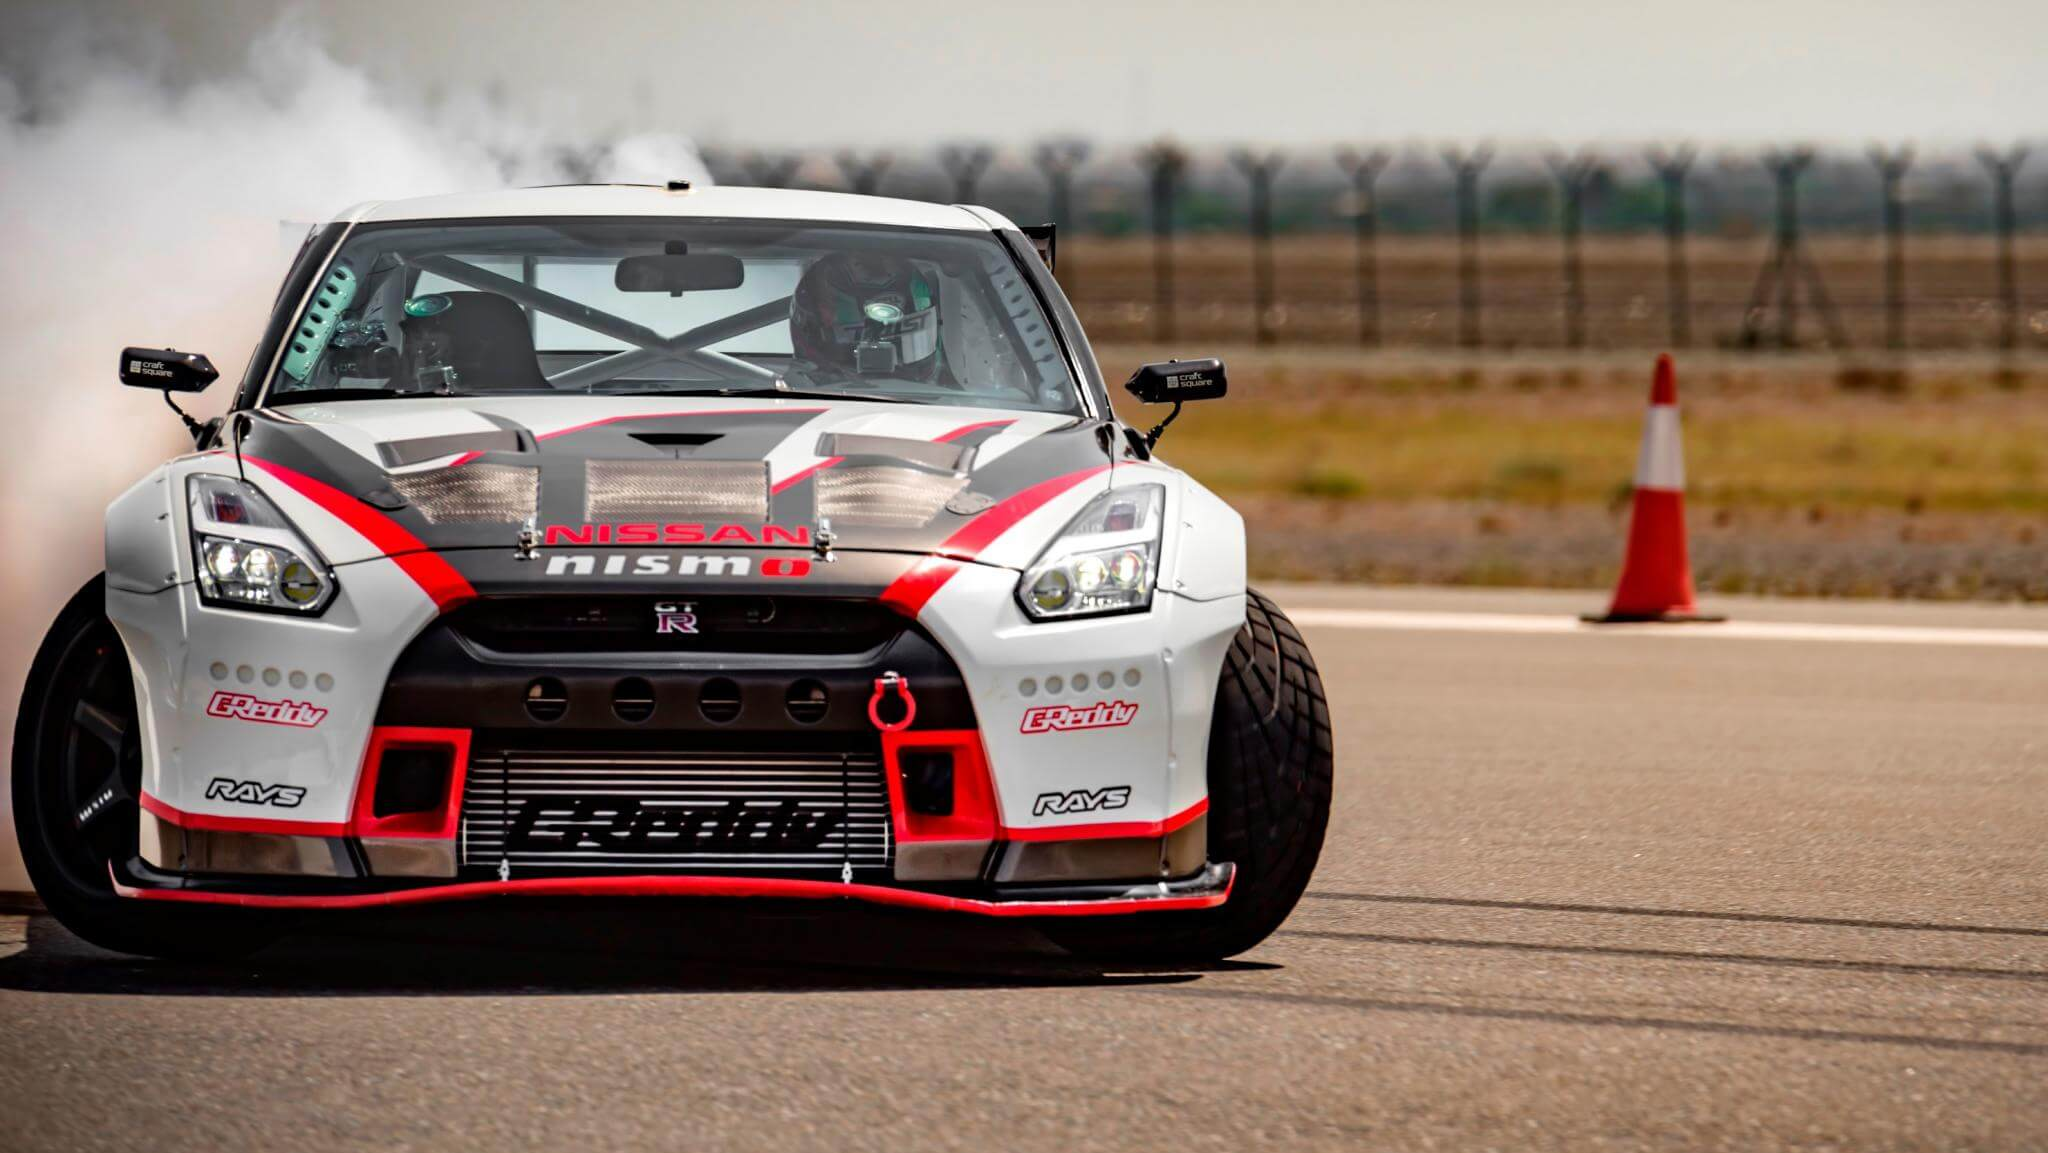 Nissan-GT-R-Nismo-World-Record-Drift-wallpaper-wp580395